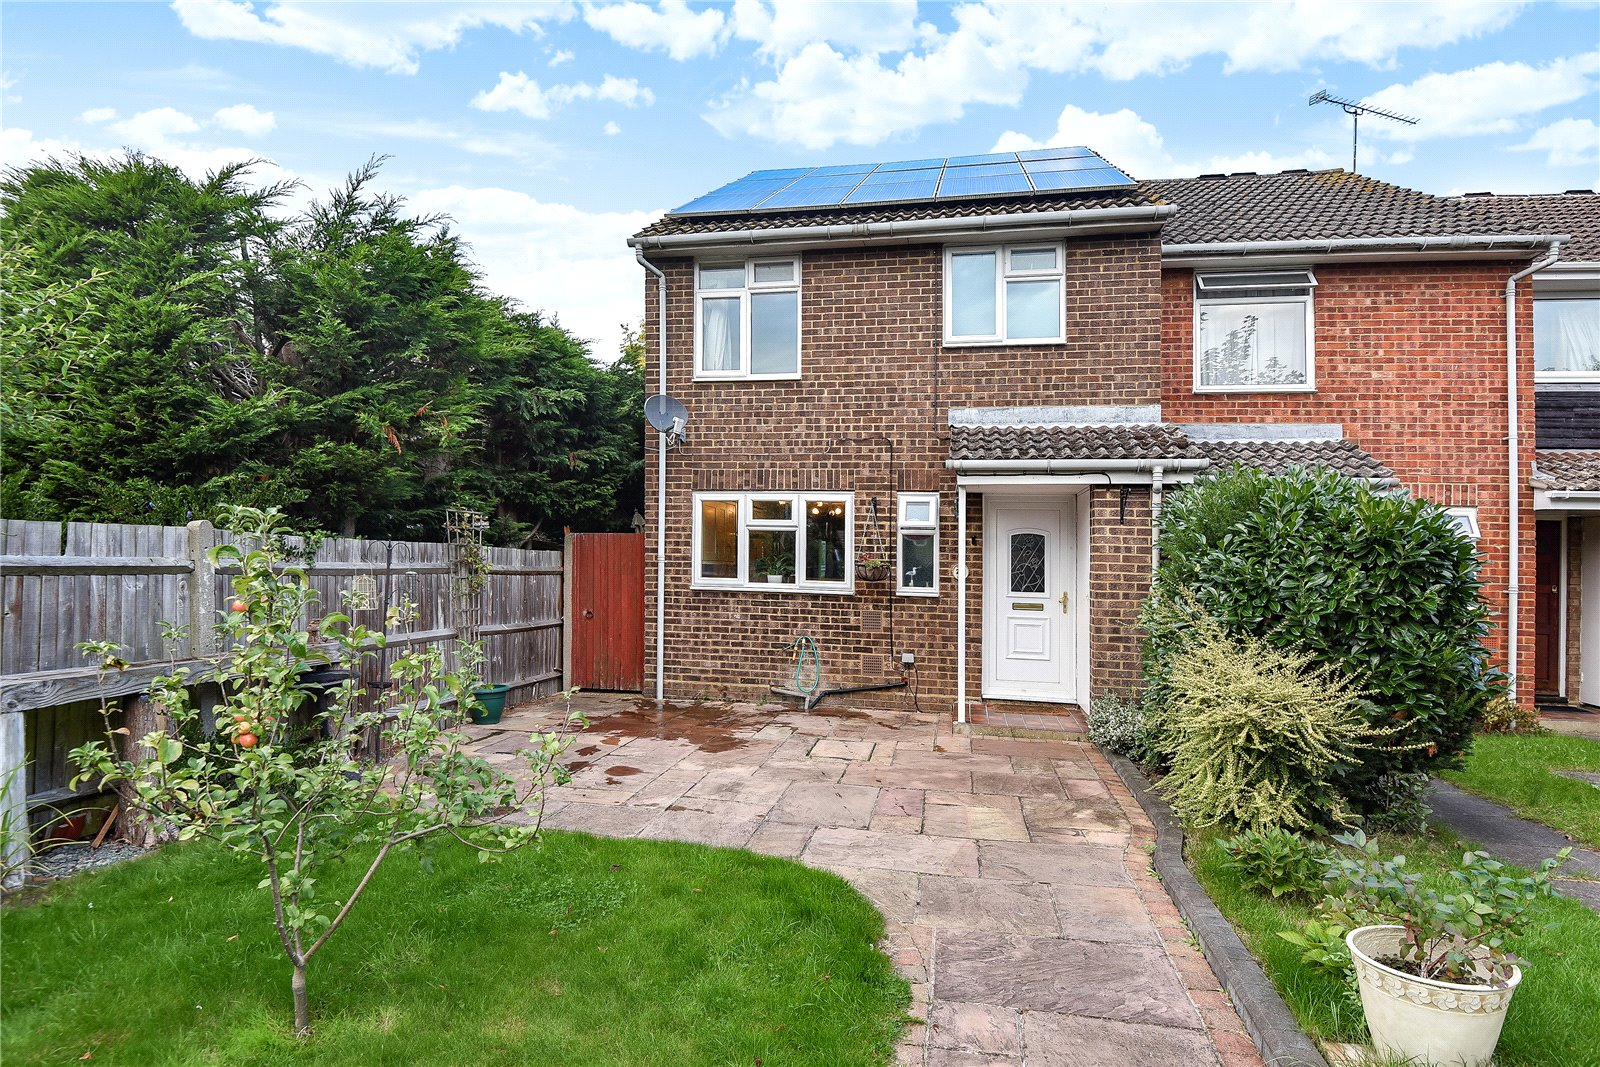 4 Bedrooms End Of Terrace House for sale in Arkley Court, Maidenhead, Berkshire, SL6